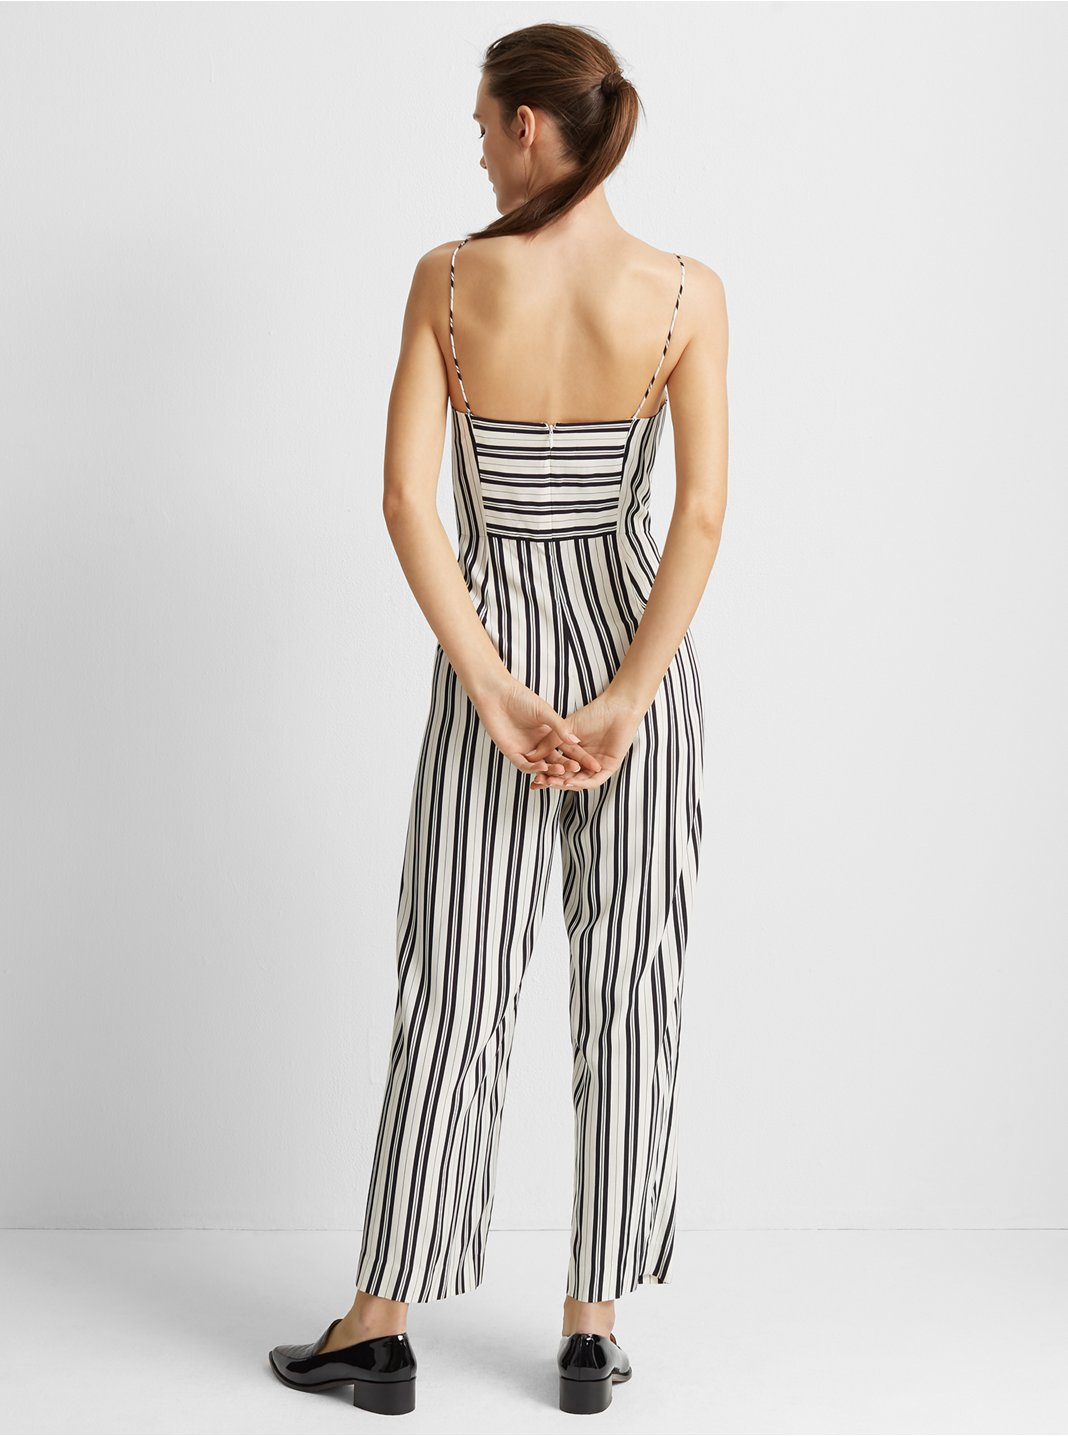 newest cba09 4290d Women's Jumpsuits and Rompers | Club Monaco